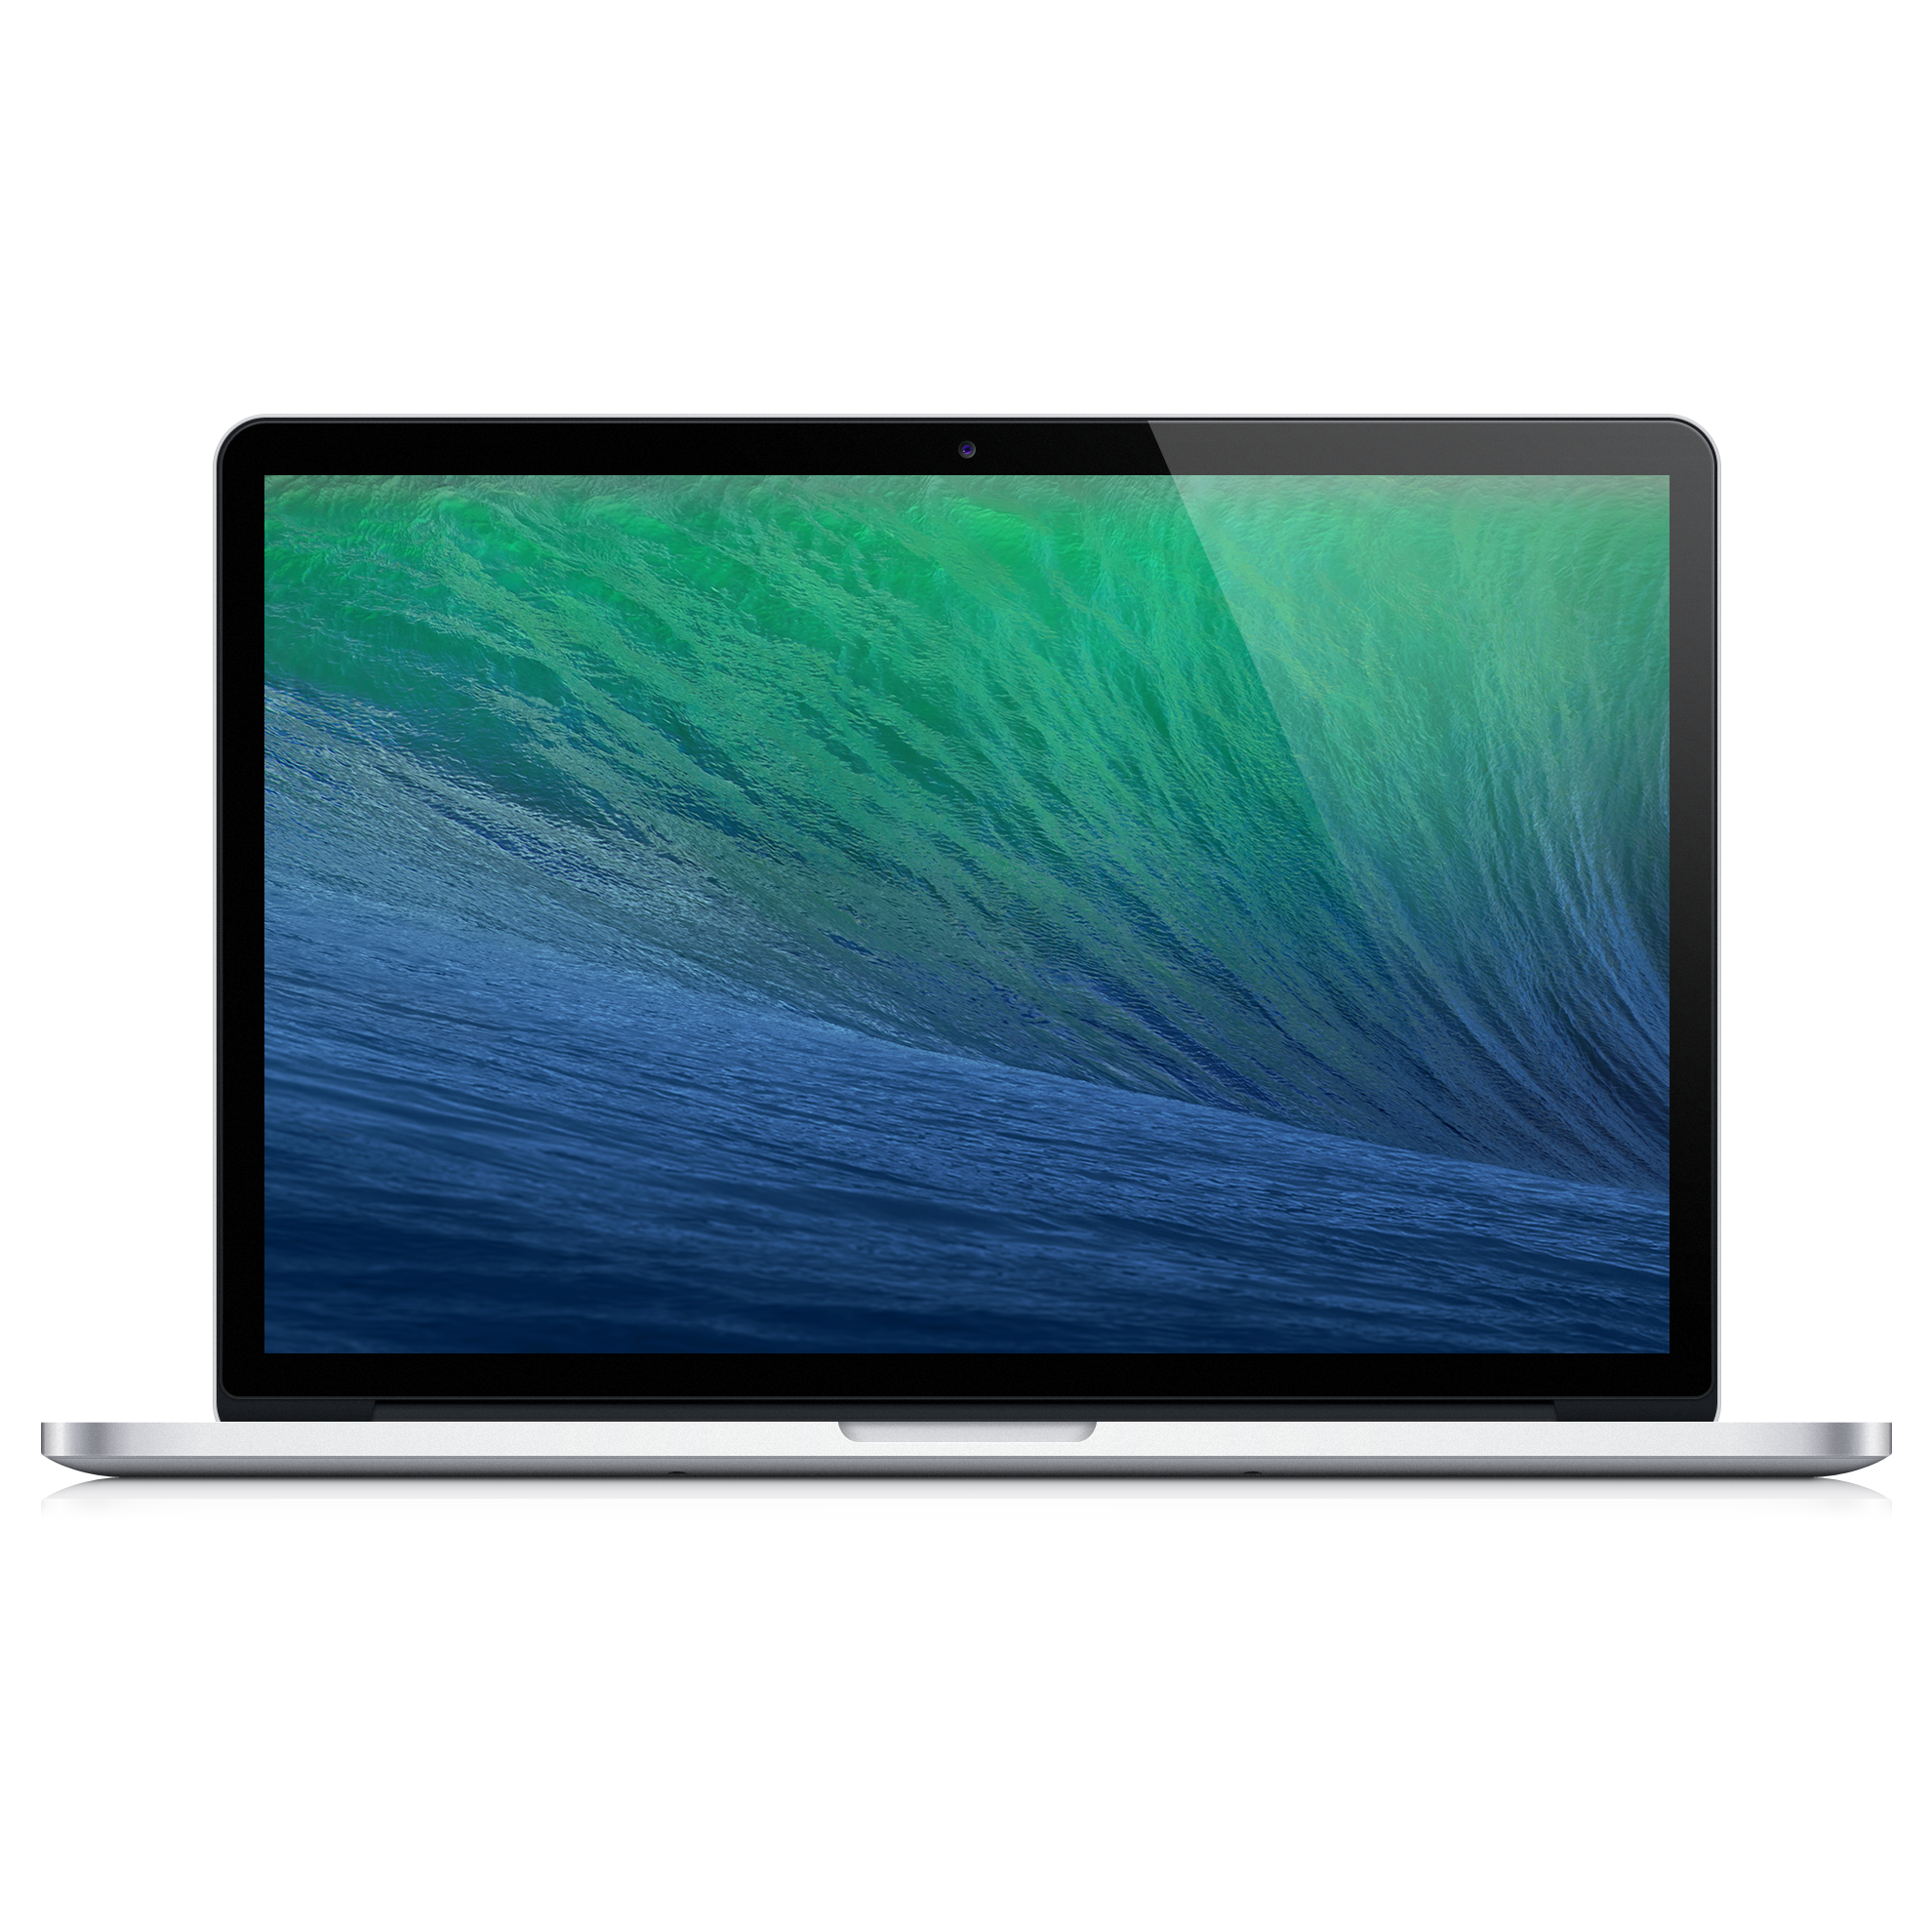 Os X Mavericks Macbook Png By Sucxces On Deviantart